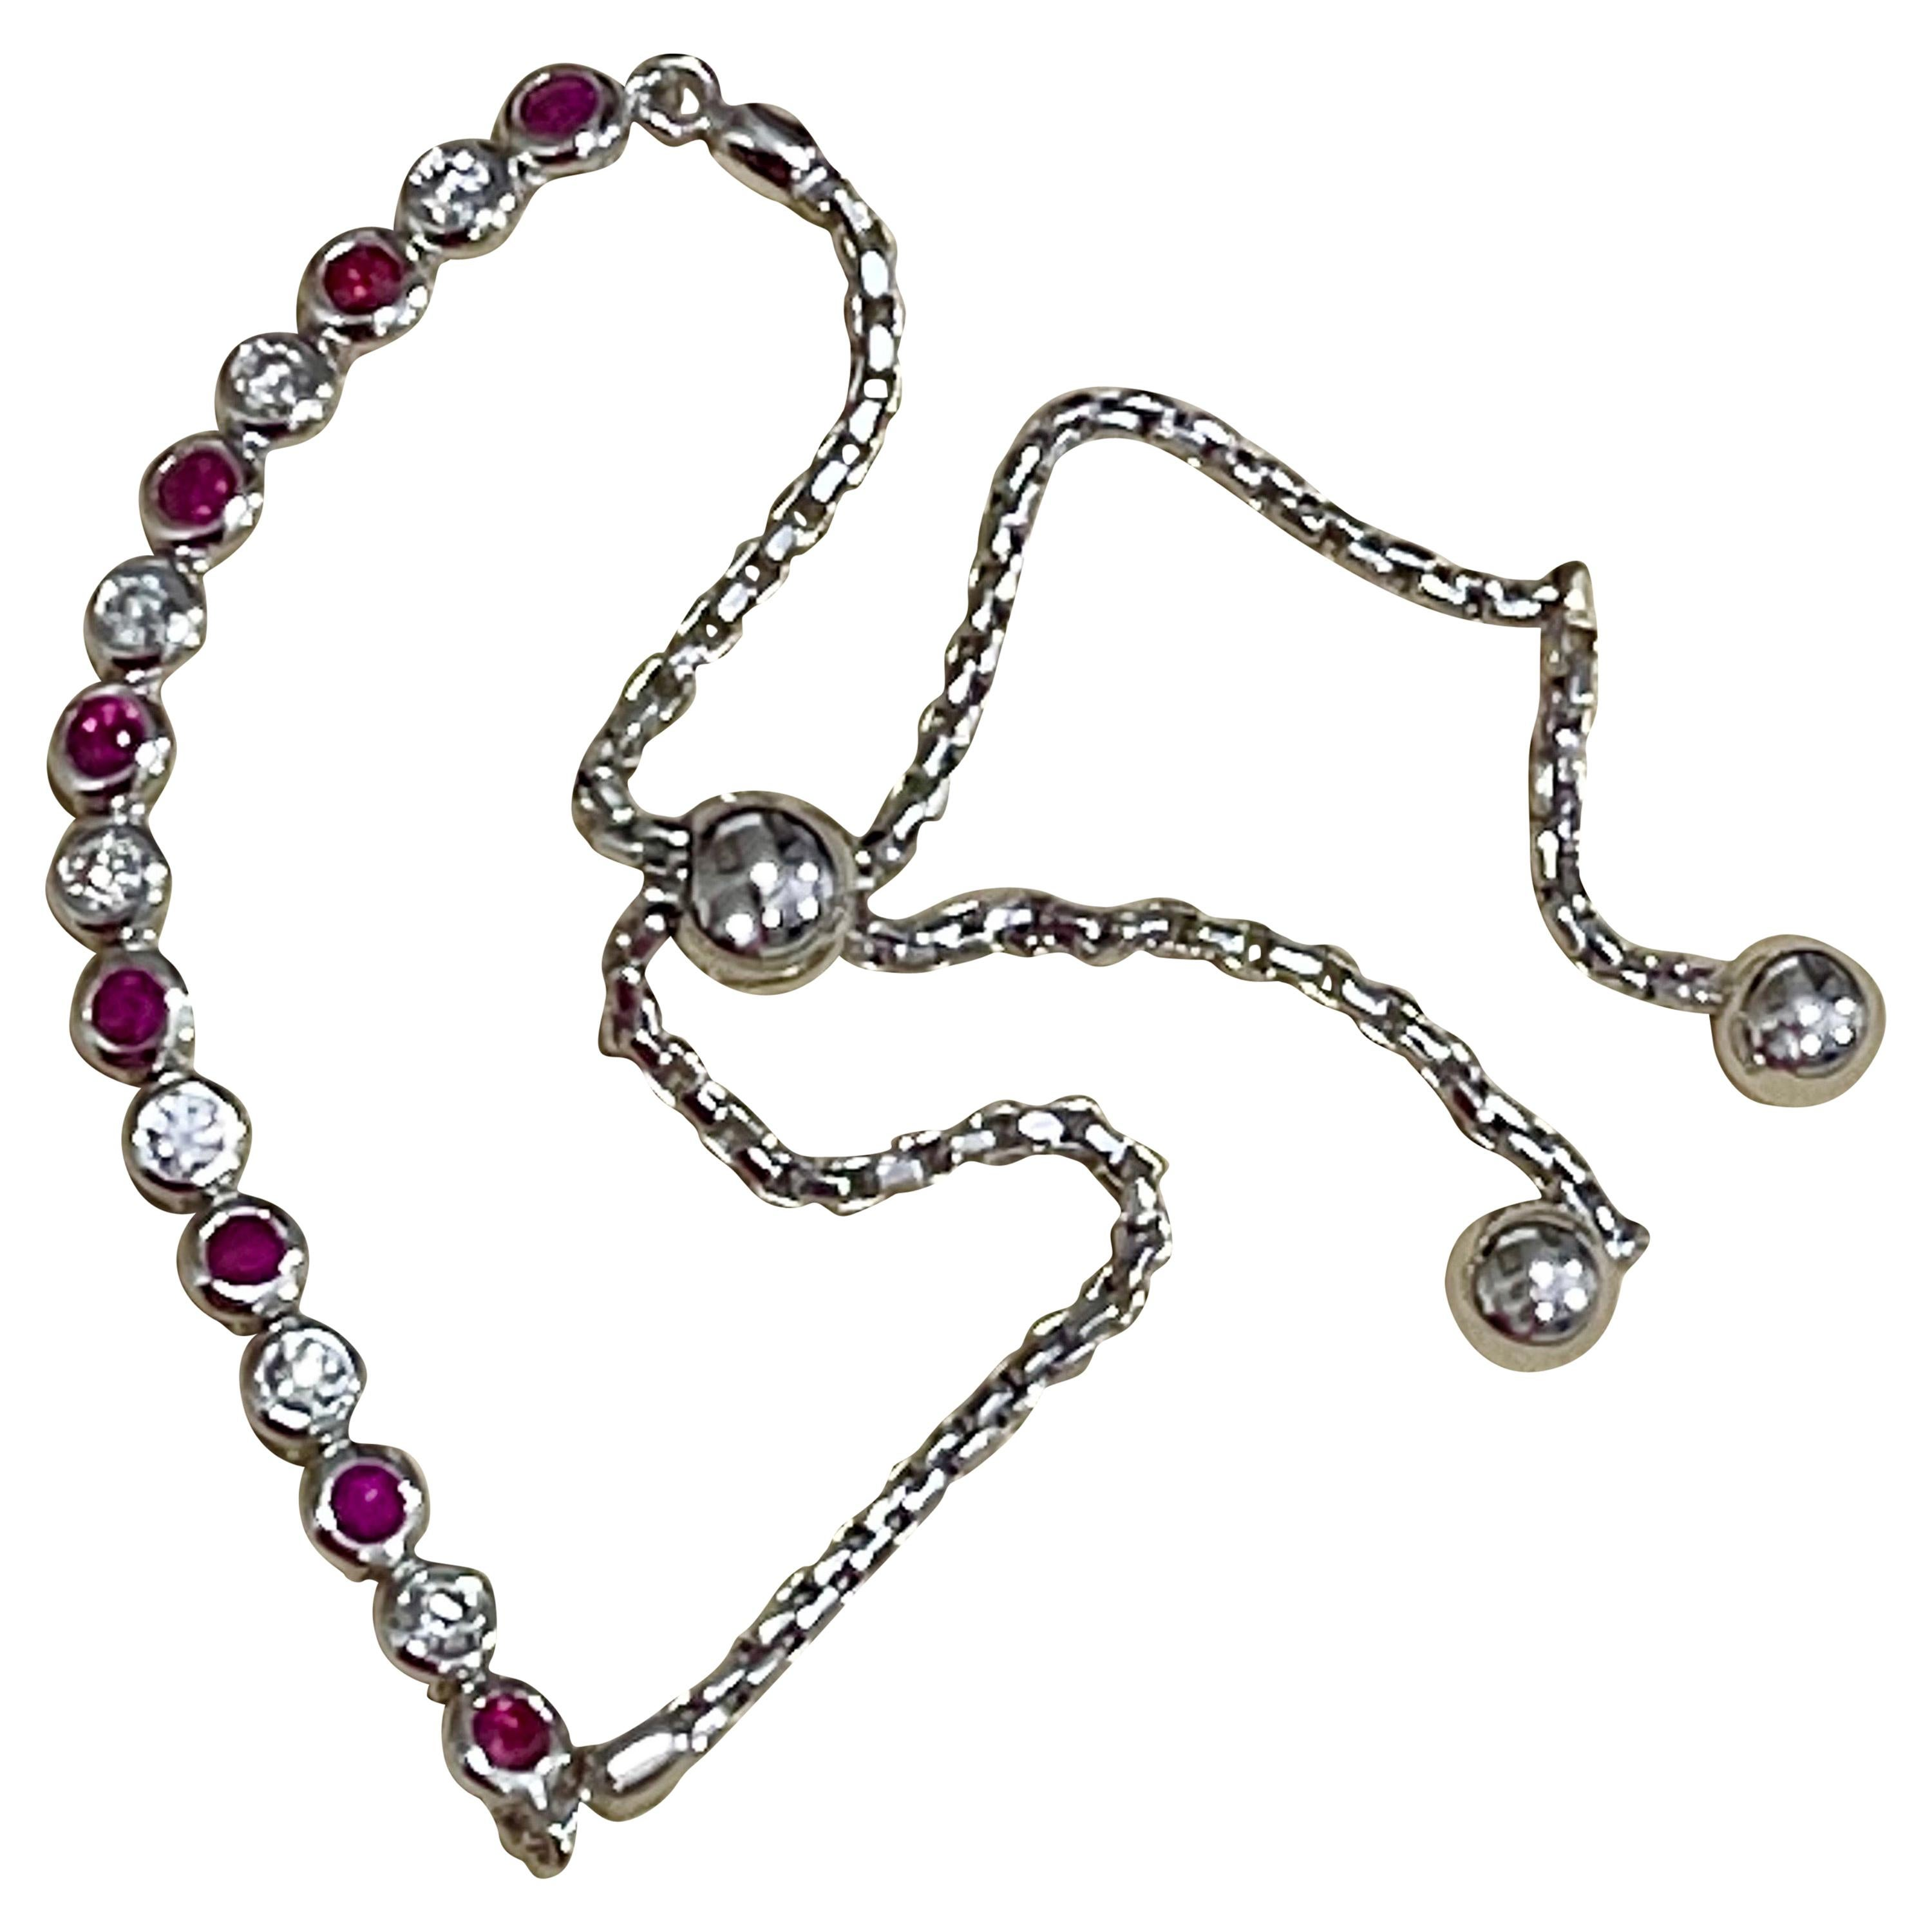 Effy's Diamond and Ruby Line Tennis Bracelet in White Gold Bolo Adjustable Clasp